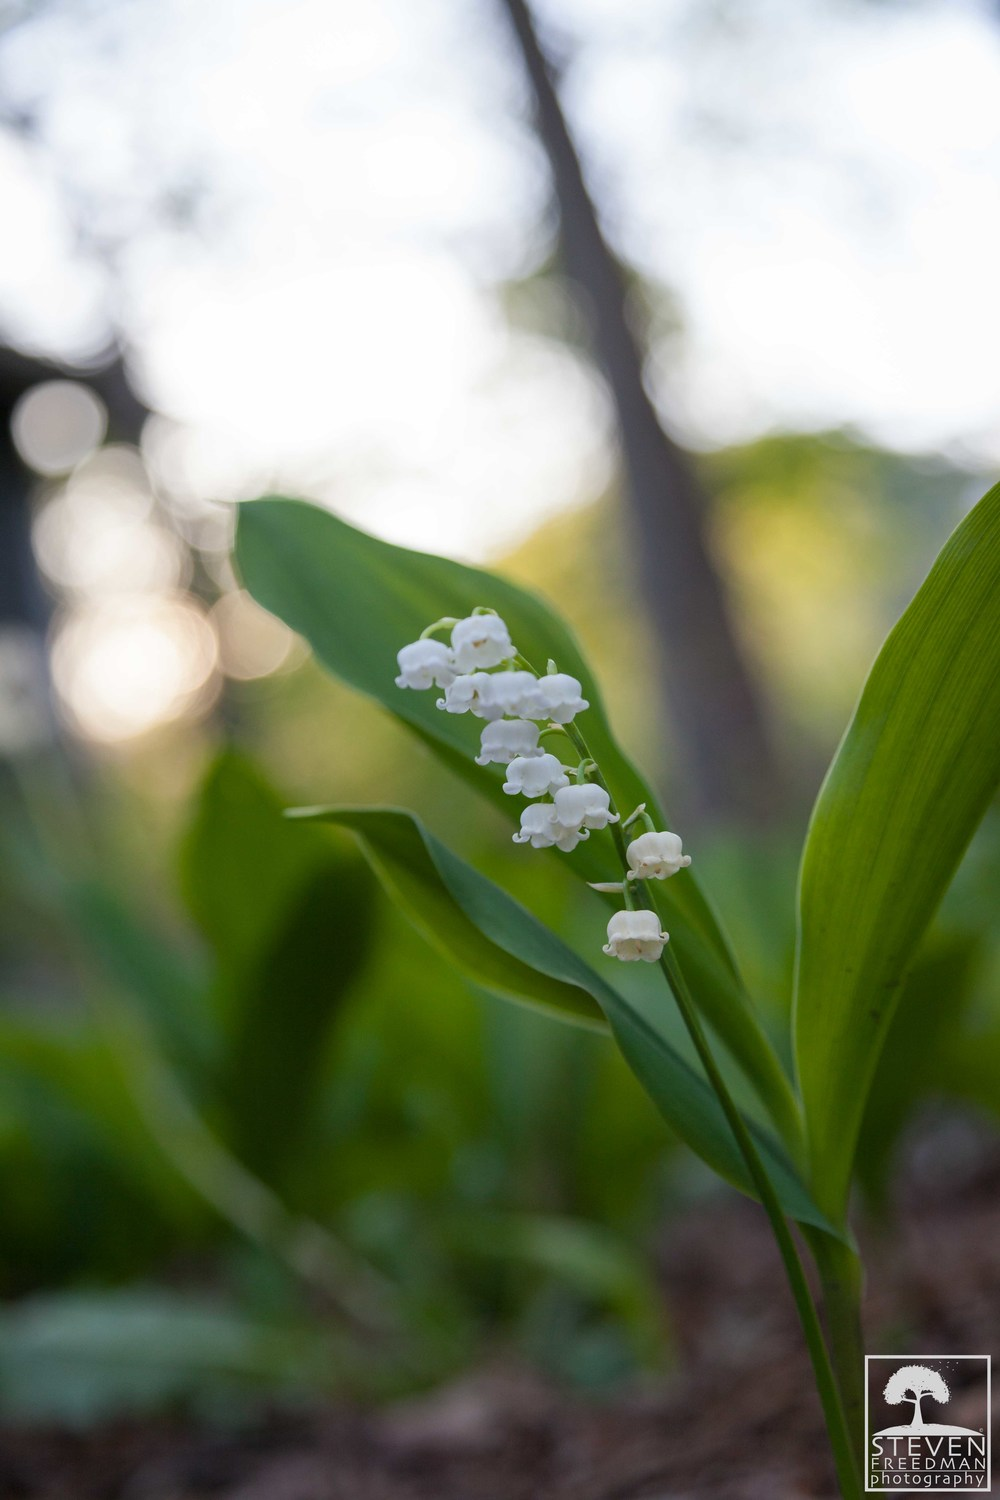 Lily of the Valley has to be one of the most fragrant flowers in the world